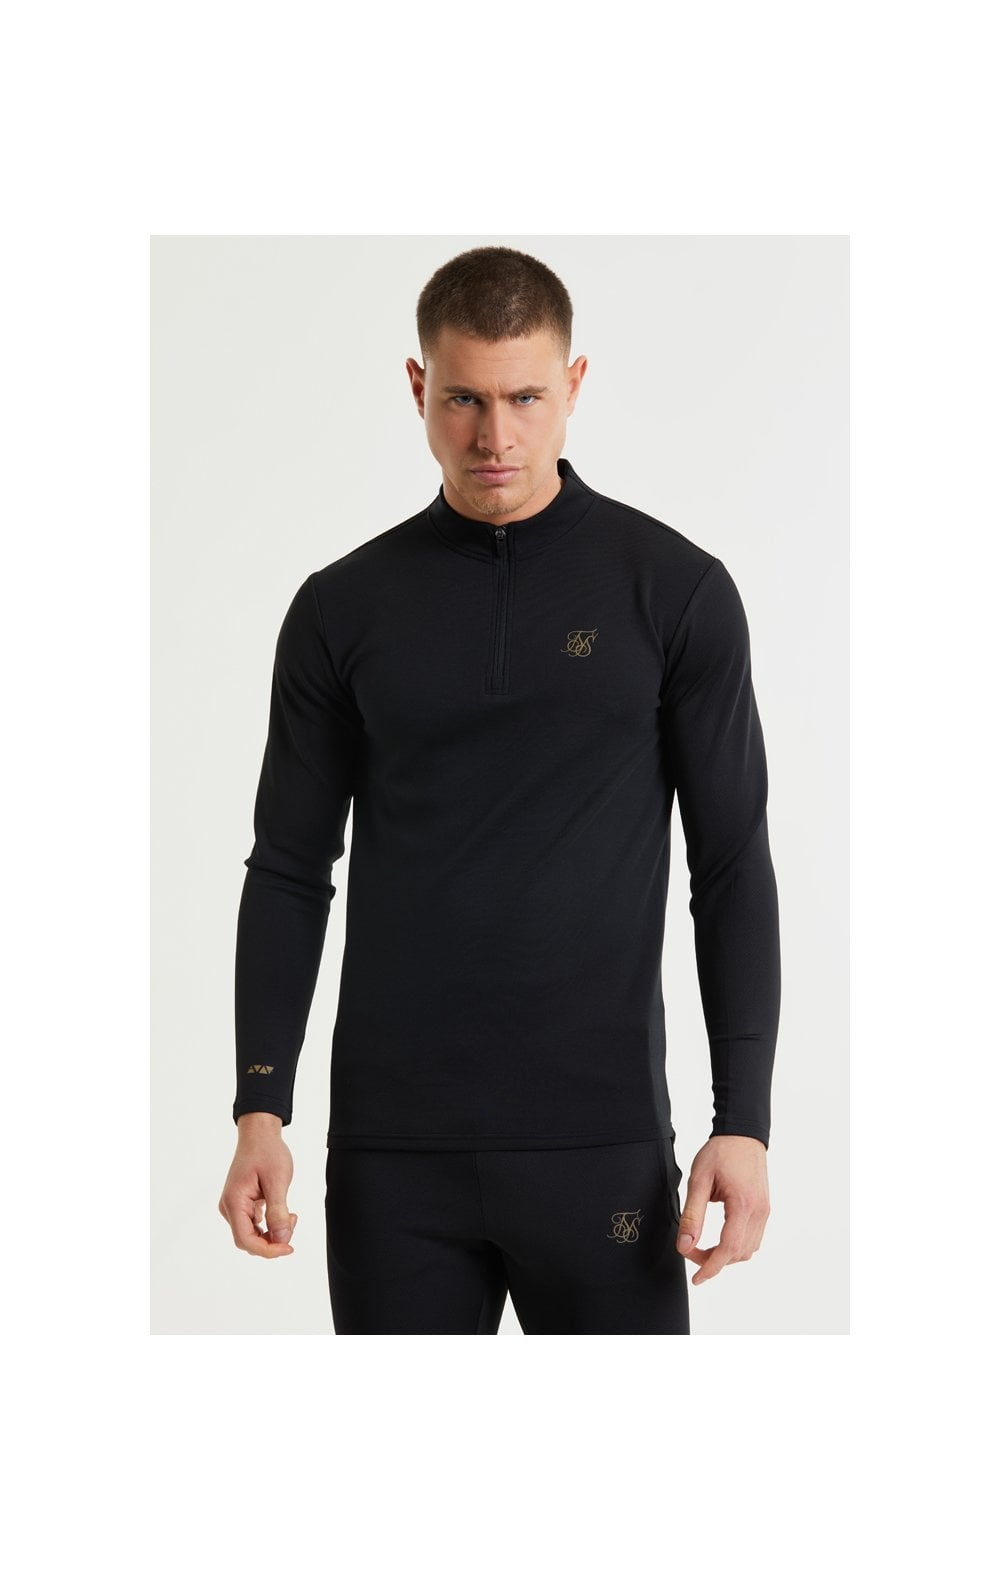 SikSilk L/S Quarter Zip Performance Top - Black & Gold